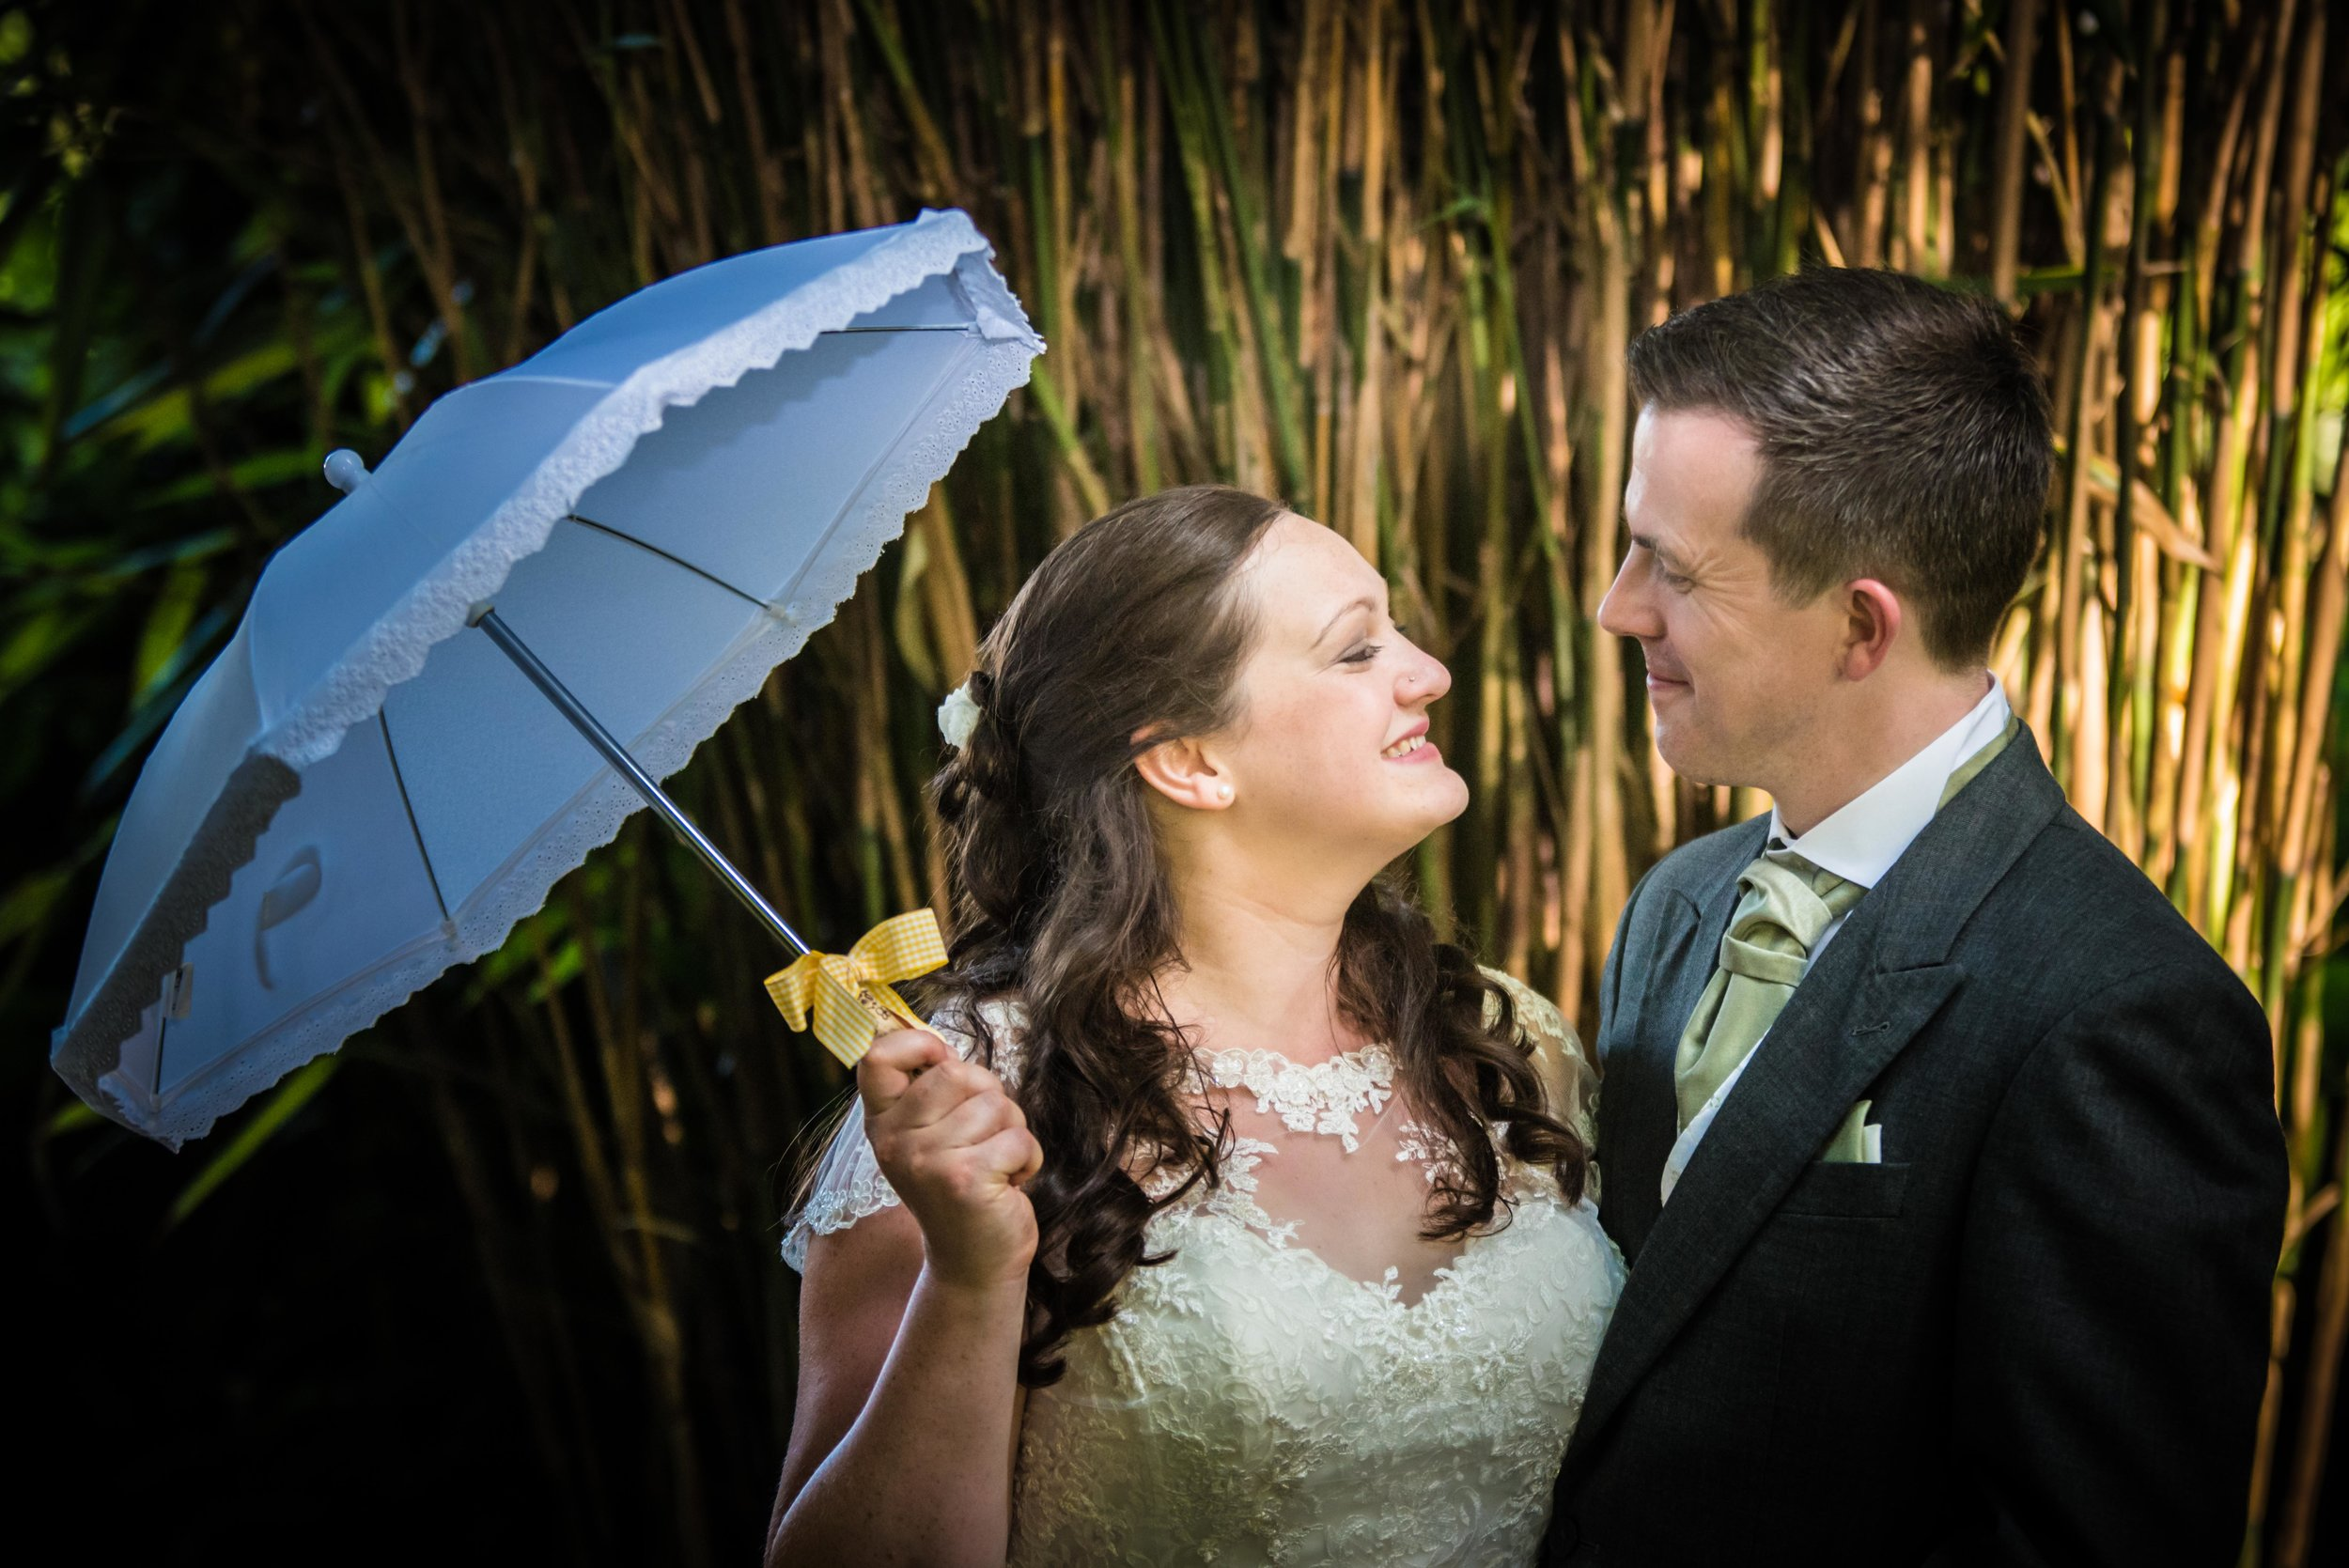 Abigail & Dave - Half Day Package